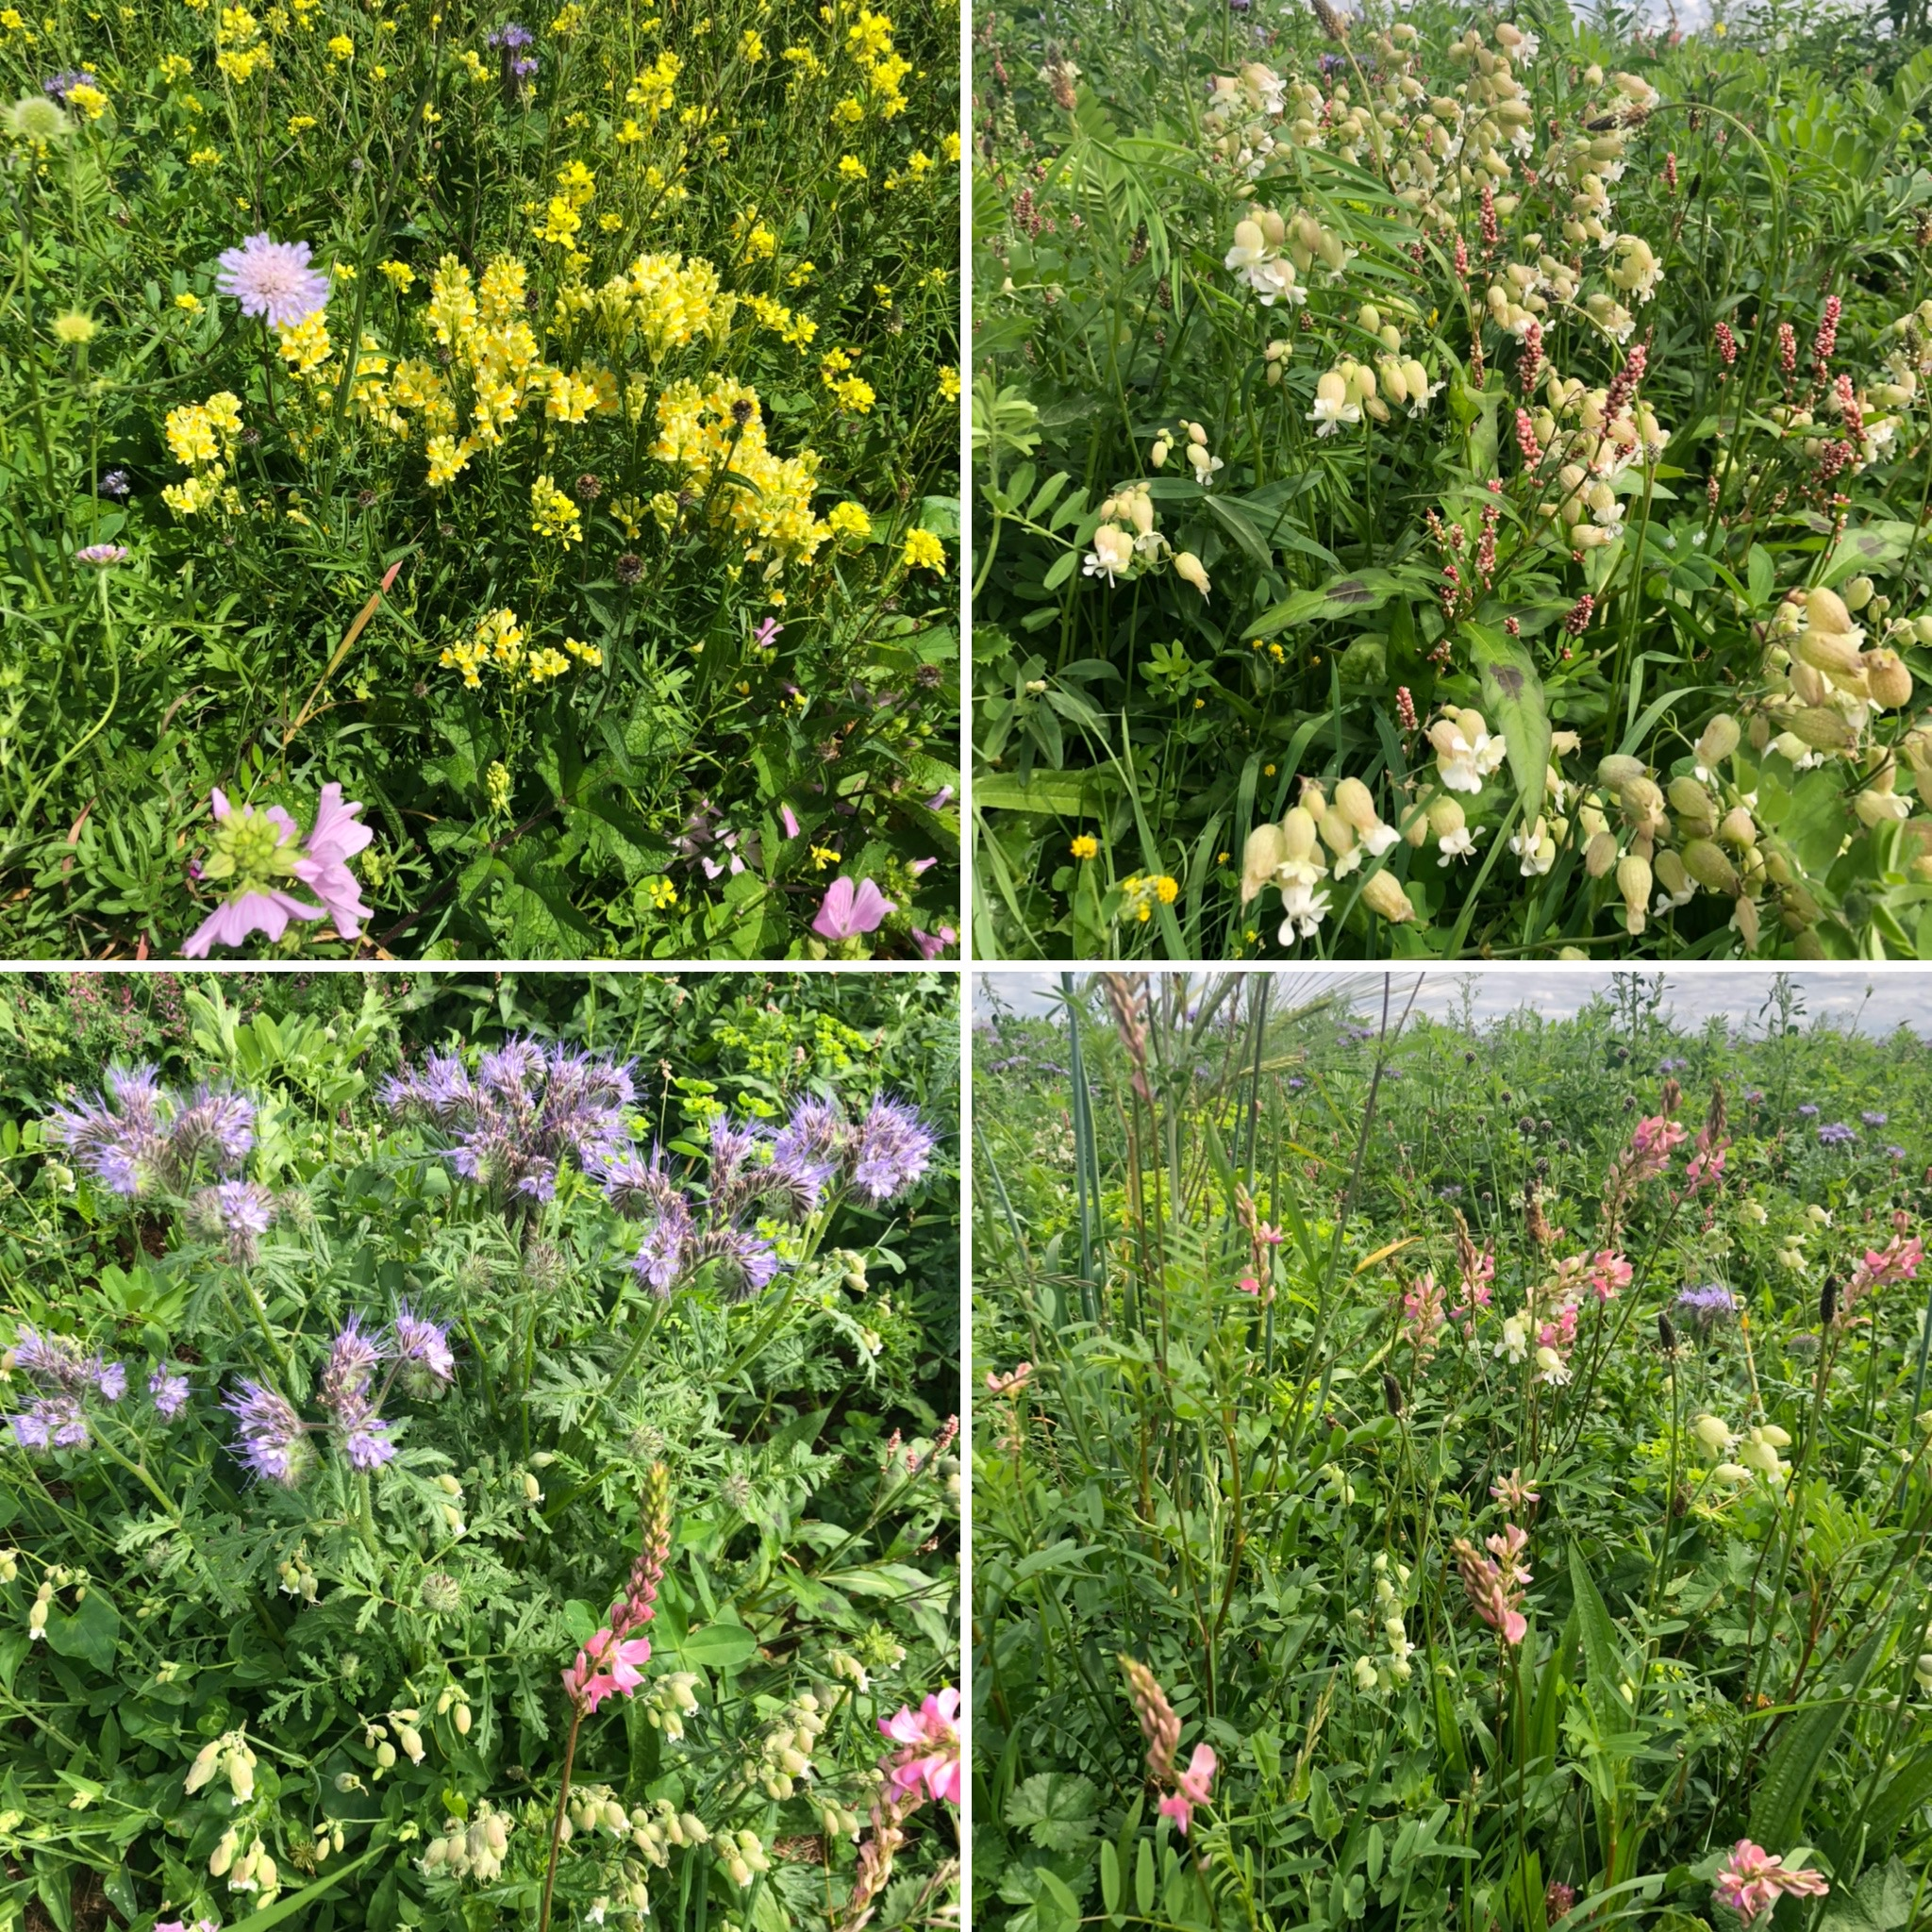 Flowers In The Strip of Green Manure - Antirhinums, Phacelia, Sainfoin And Many More